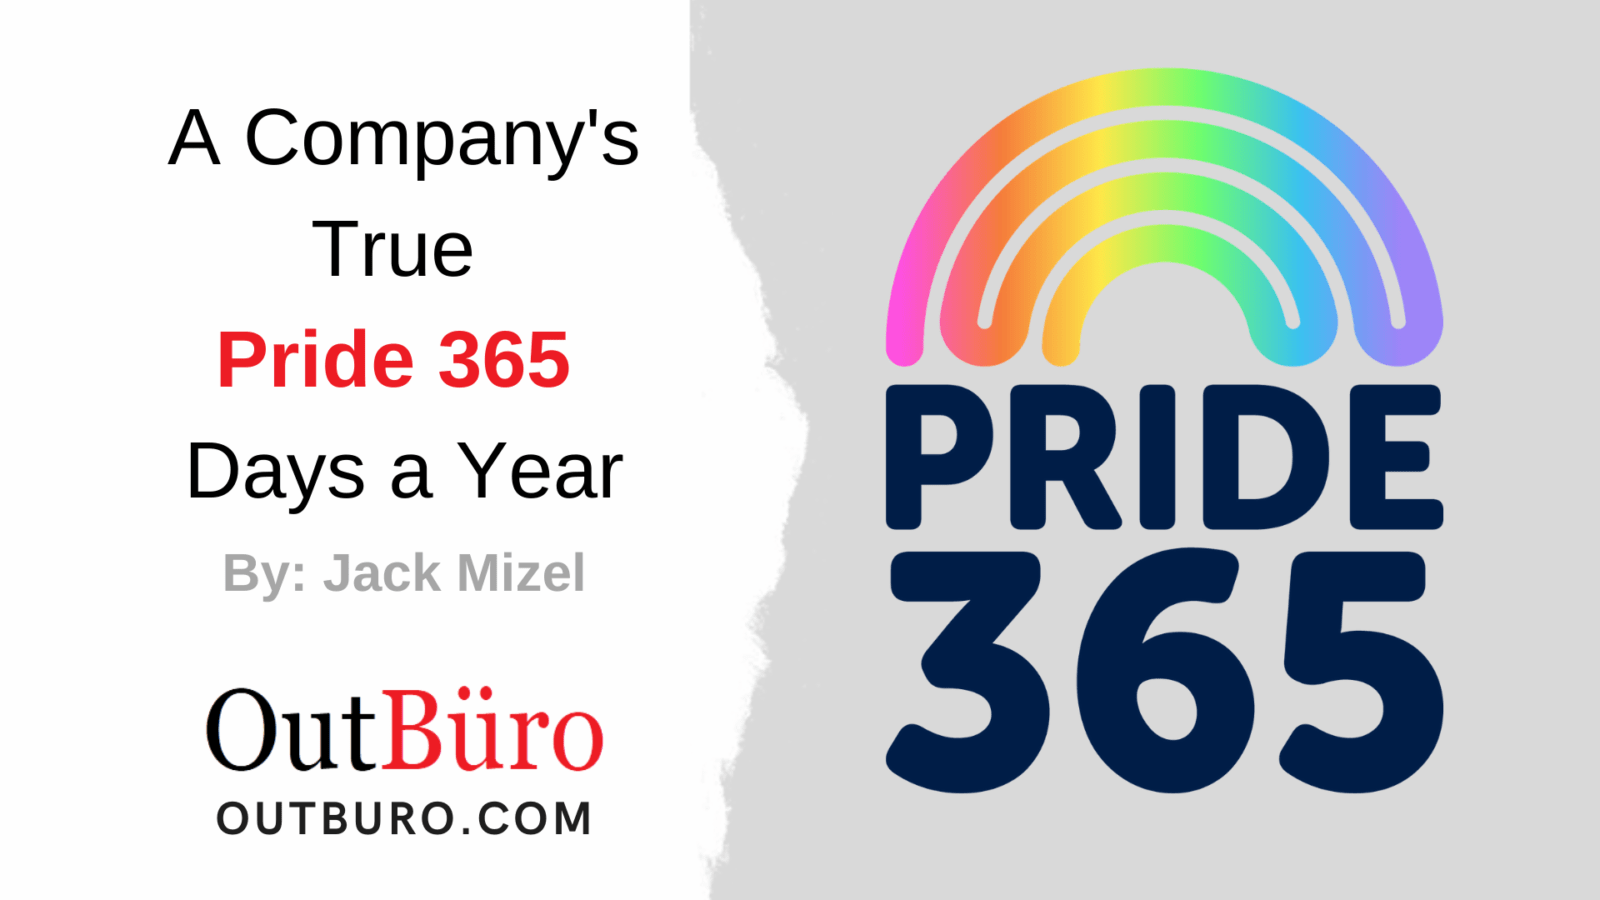 A Company's True Pride 365 Days a Year - OutBuro - Company Ratings Review by LGBT consumers clients customers LGBTQ entrepreneur professional community gay lesbian